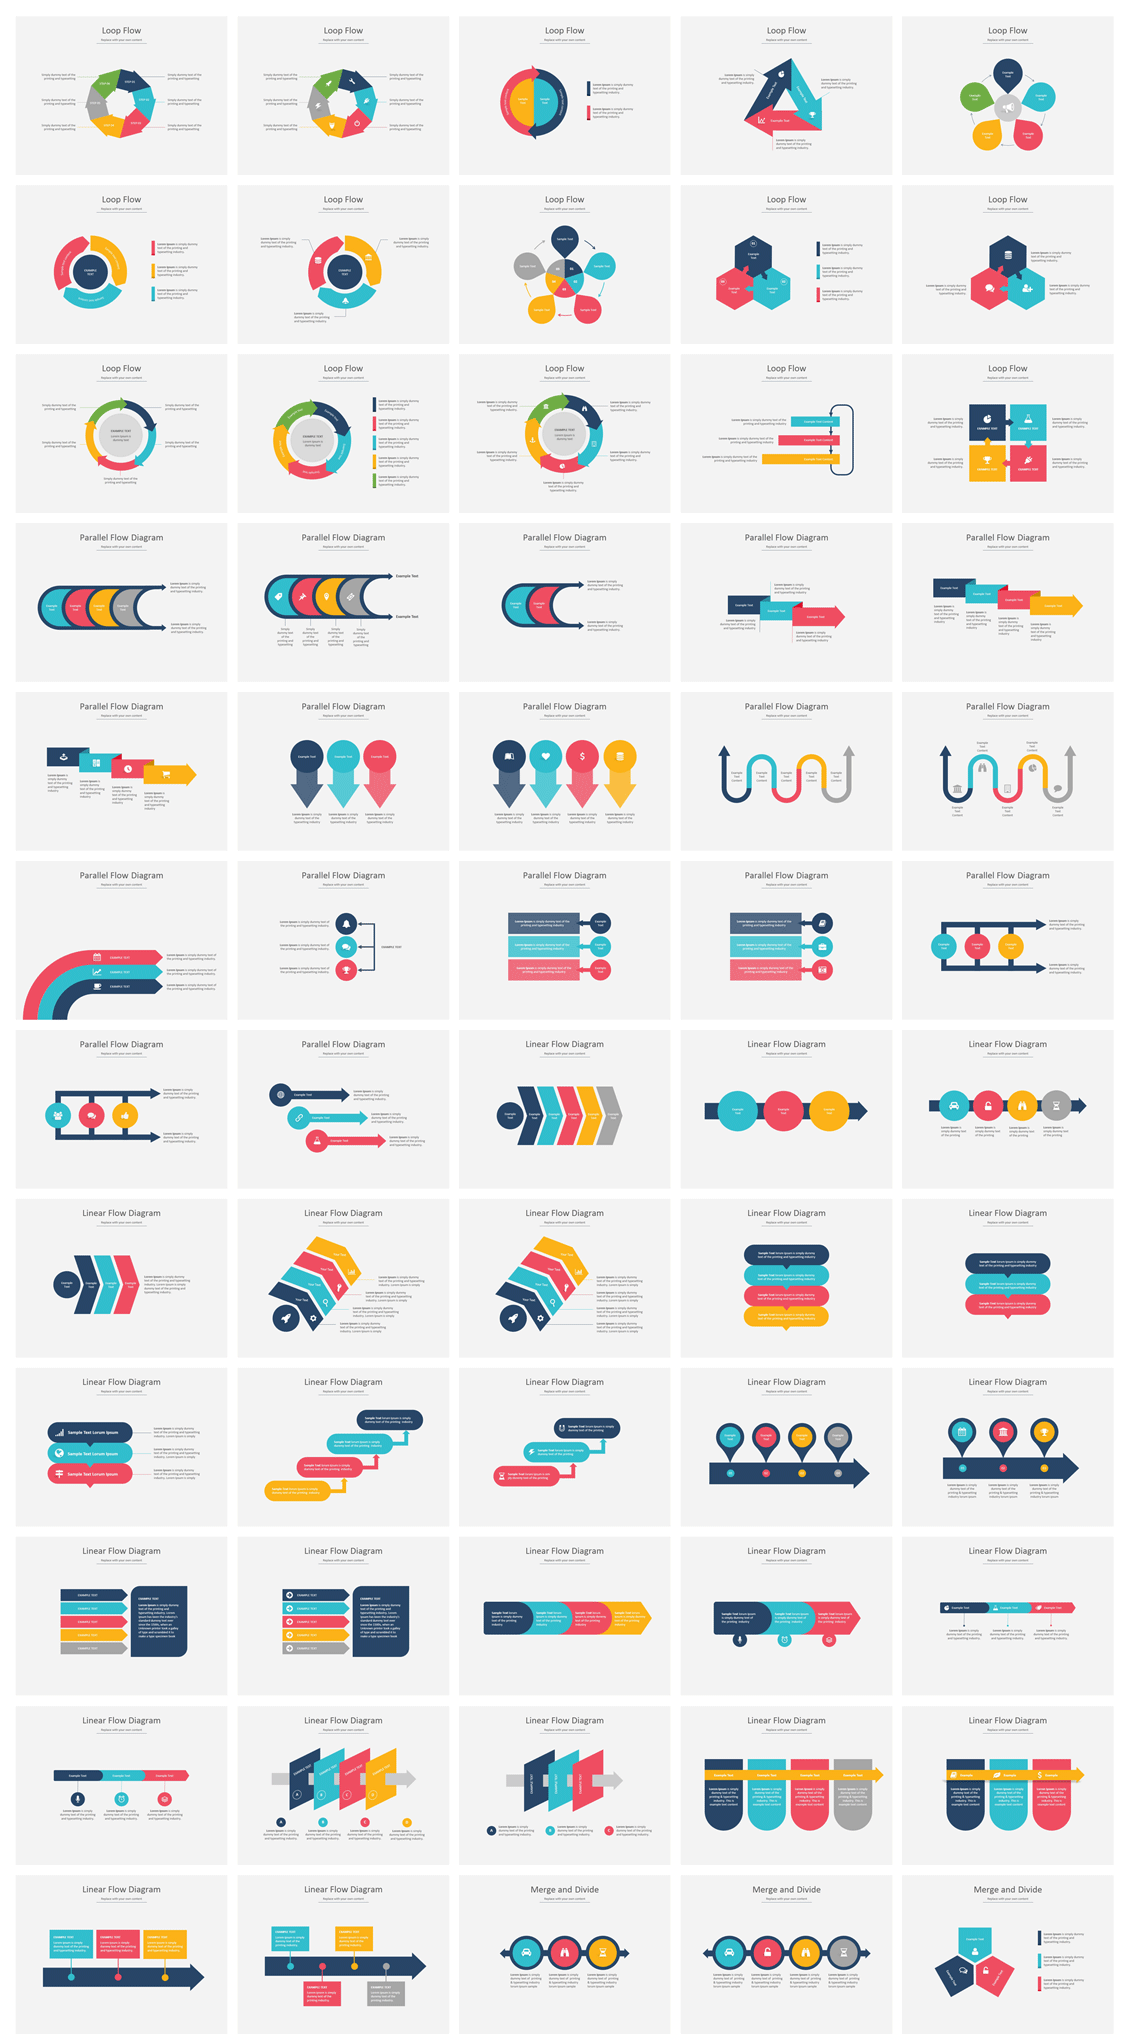 Beautifull Powerpoint Diagrams Powerpoint Flow Chart Templates And Graphics Circle Powerpoint Presentation Design Data Visualization Design Powerpoint Design